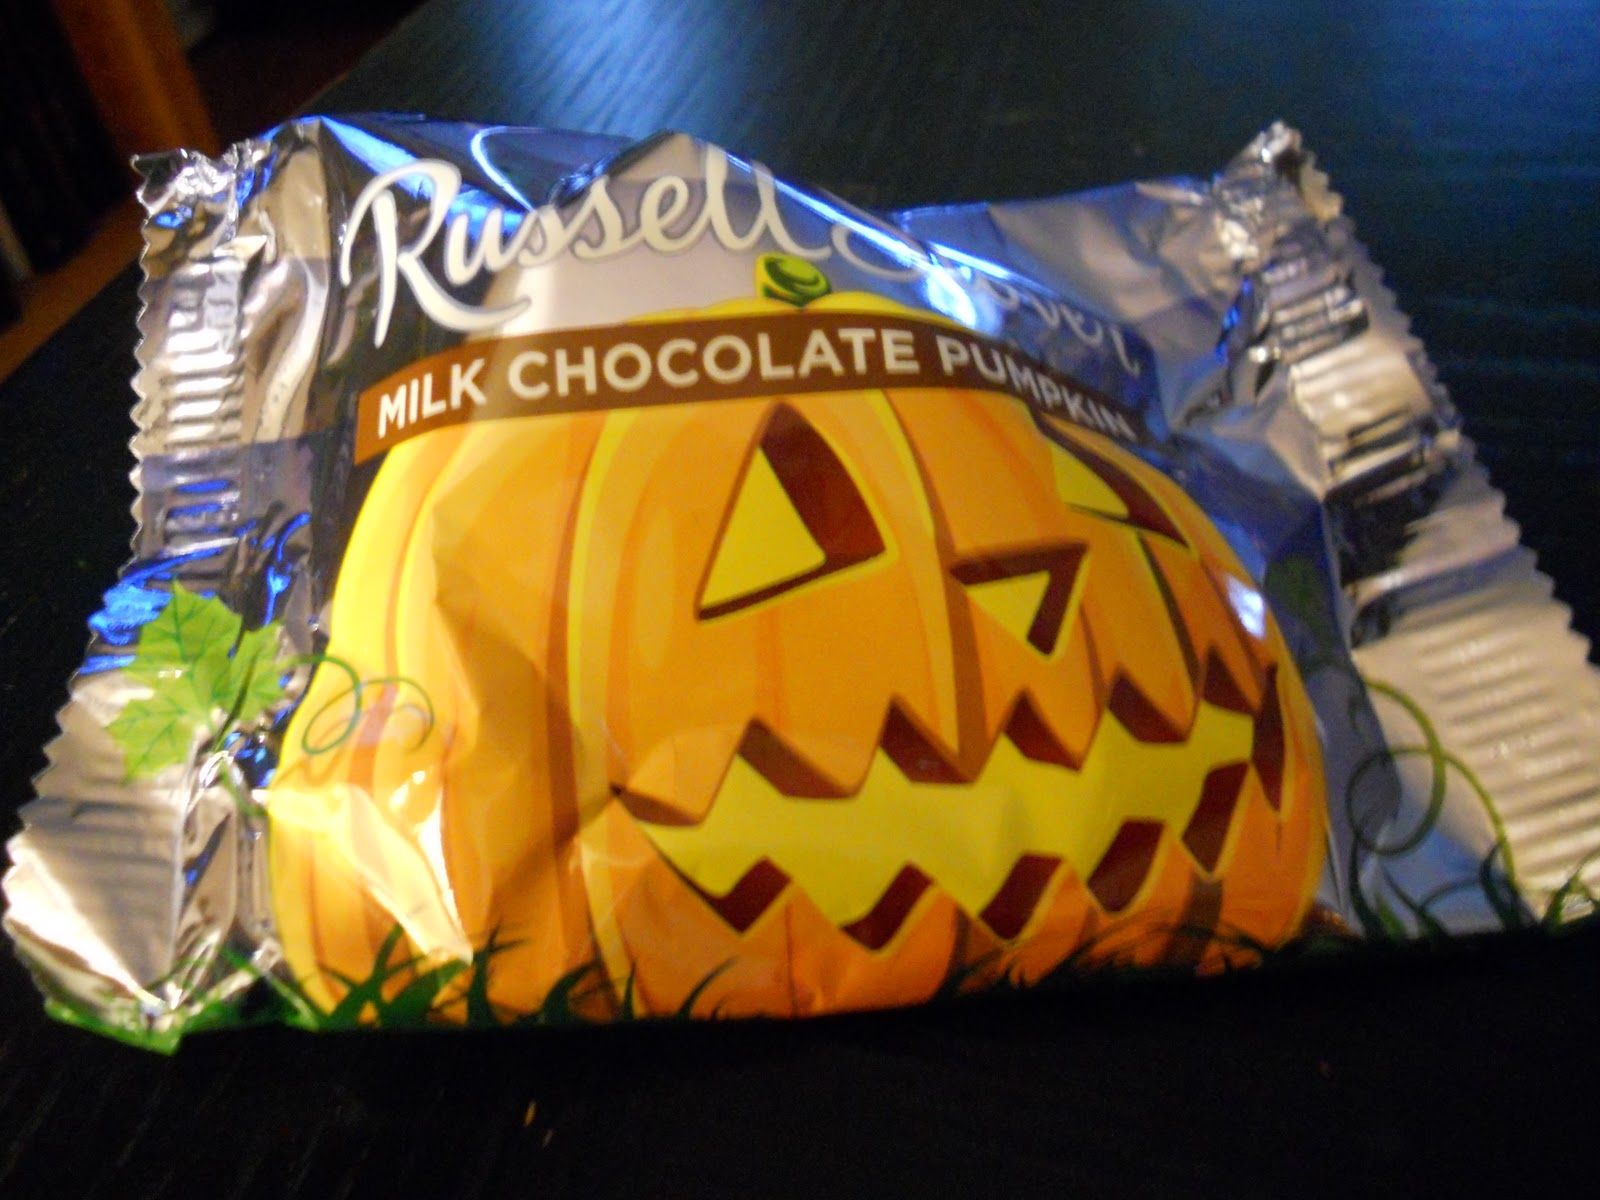 candy yum yum!: russell stover pumpkins: made in the u.s.a.